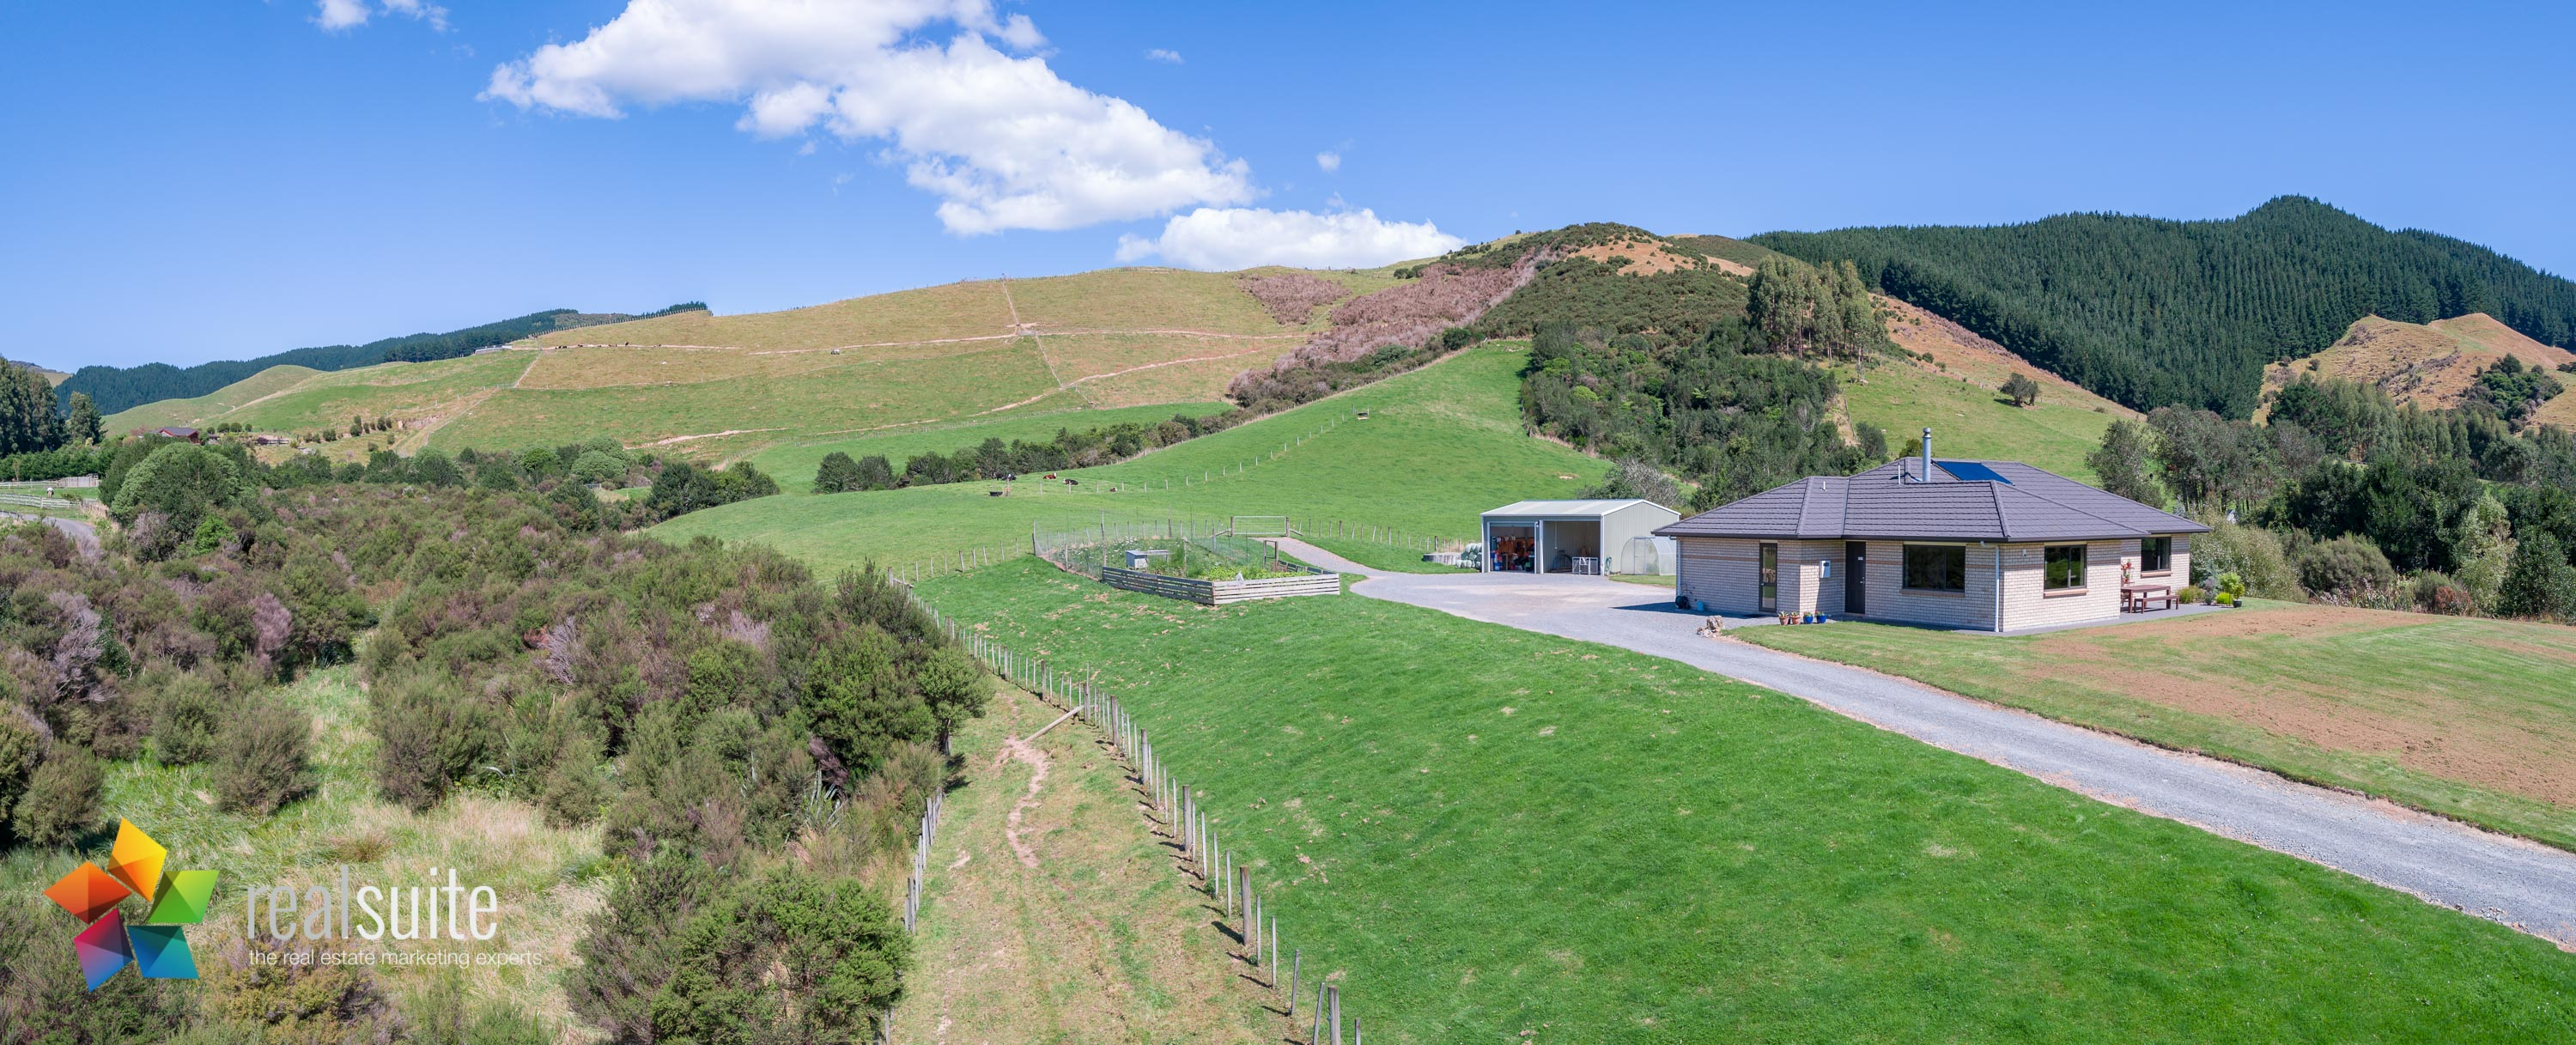 123e Johnsons Road, Whitemans Valley Aerial 0895-Pano